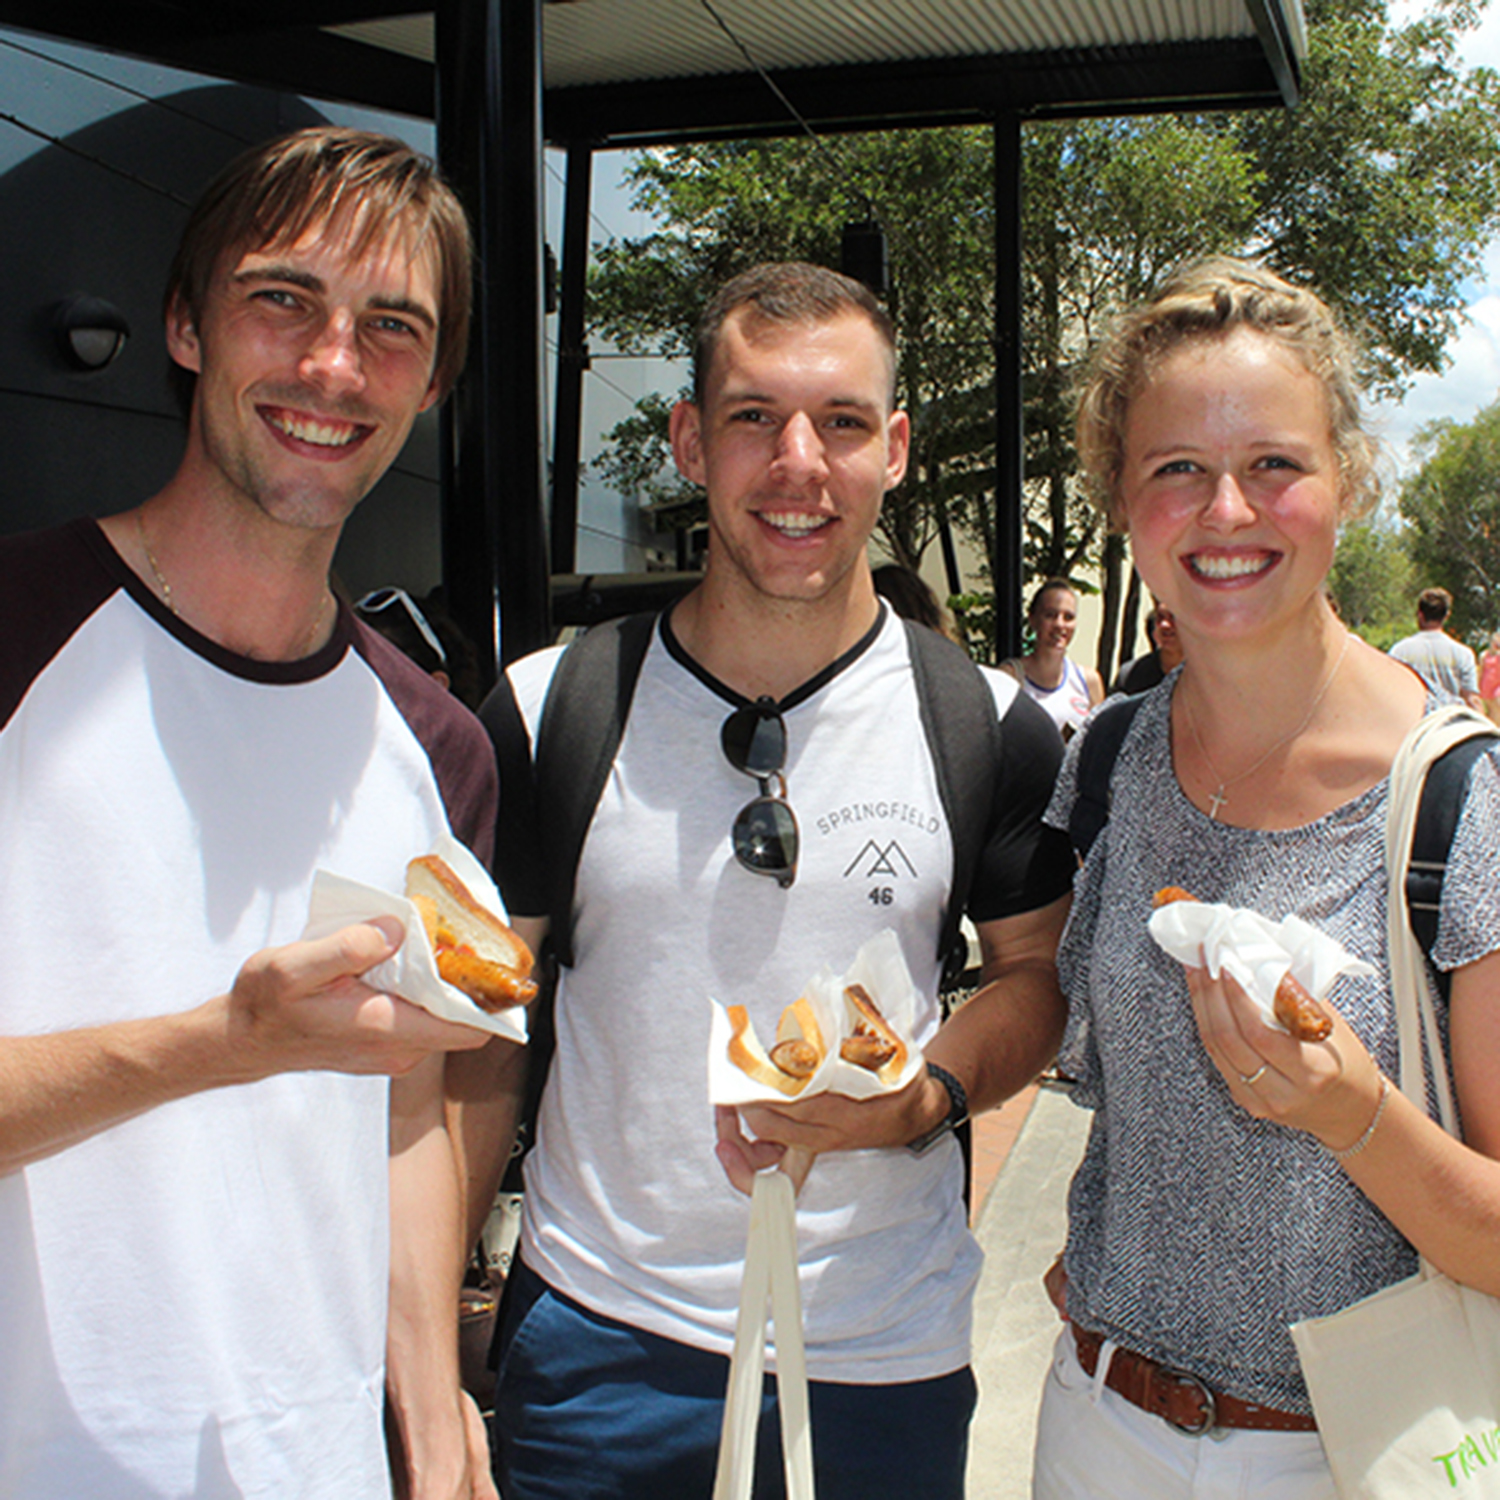 Enjoying the sausage sizzle at USC's Orientation are South African students Roy Langhein and Darryn Dyer and Emma Hough of Zimbabwe.